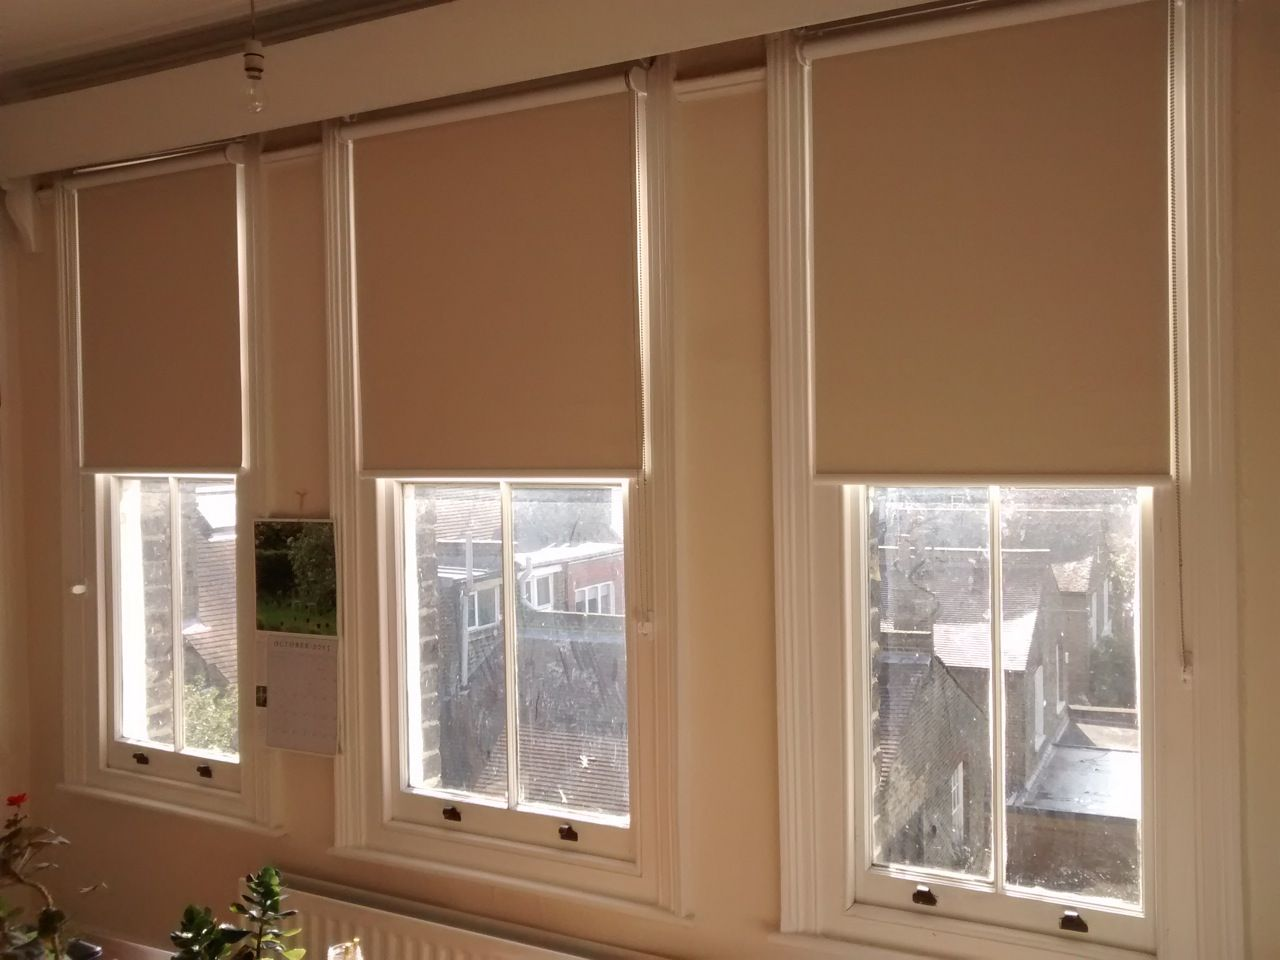 Blackout Roller Blinds With Child Safe Chain Tidy Devices